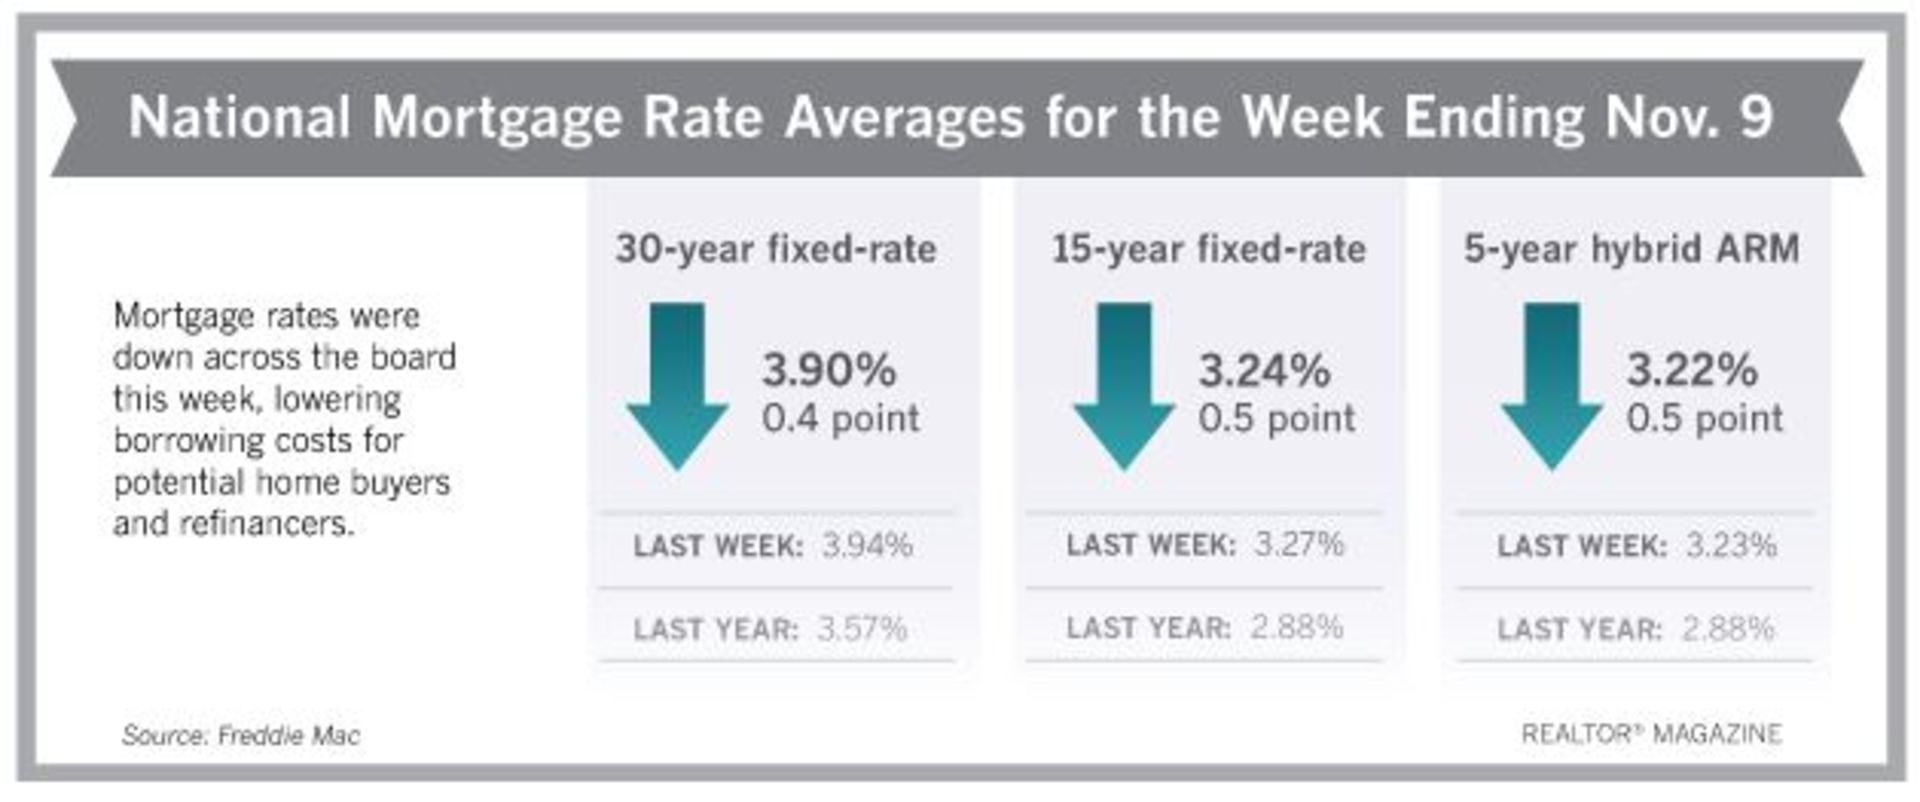 Mortgage Rates Take Slight Dip This Week